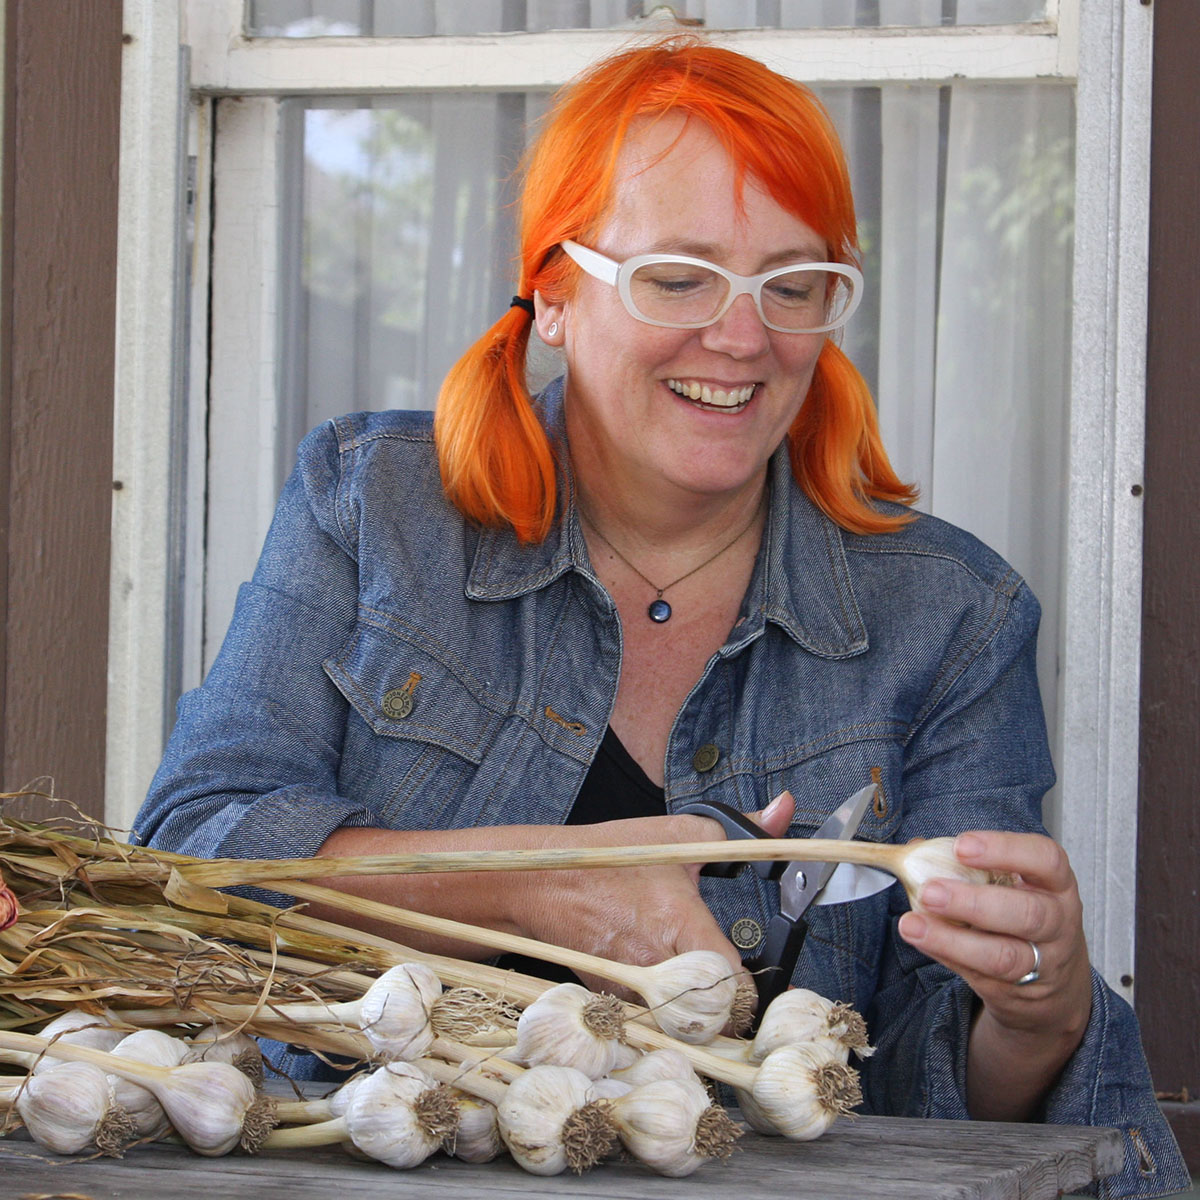 Kayte Young smiling while cutting a garlic stock, stitting at a table outdoors